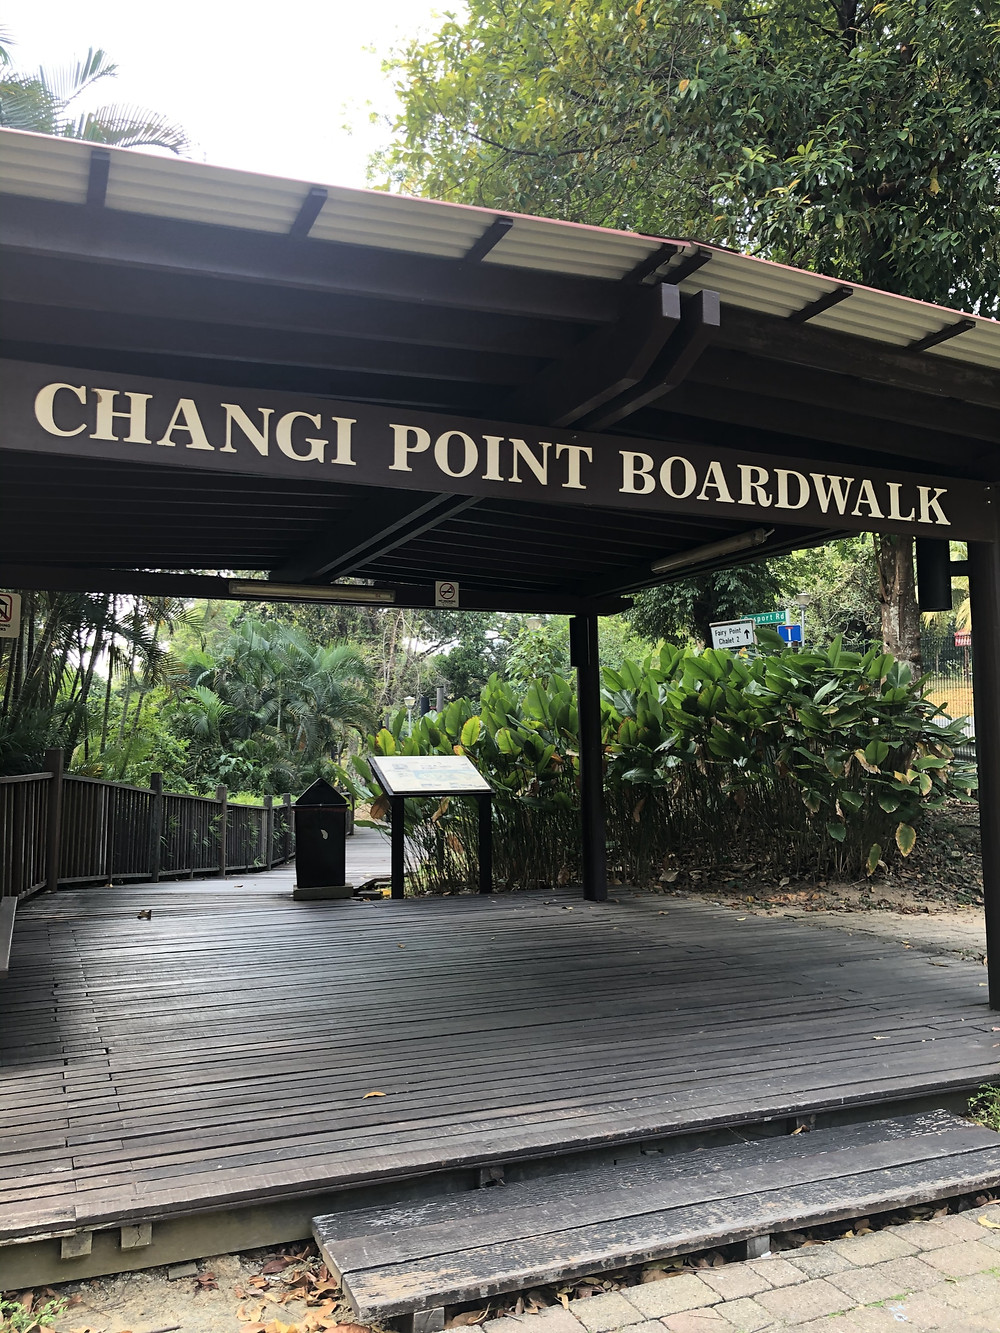 Changi Point Boardwalk